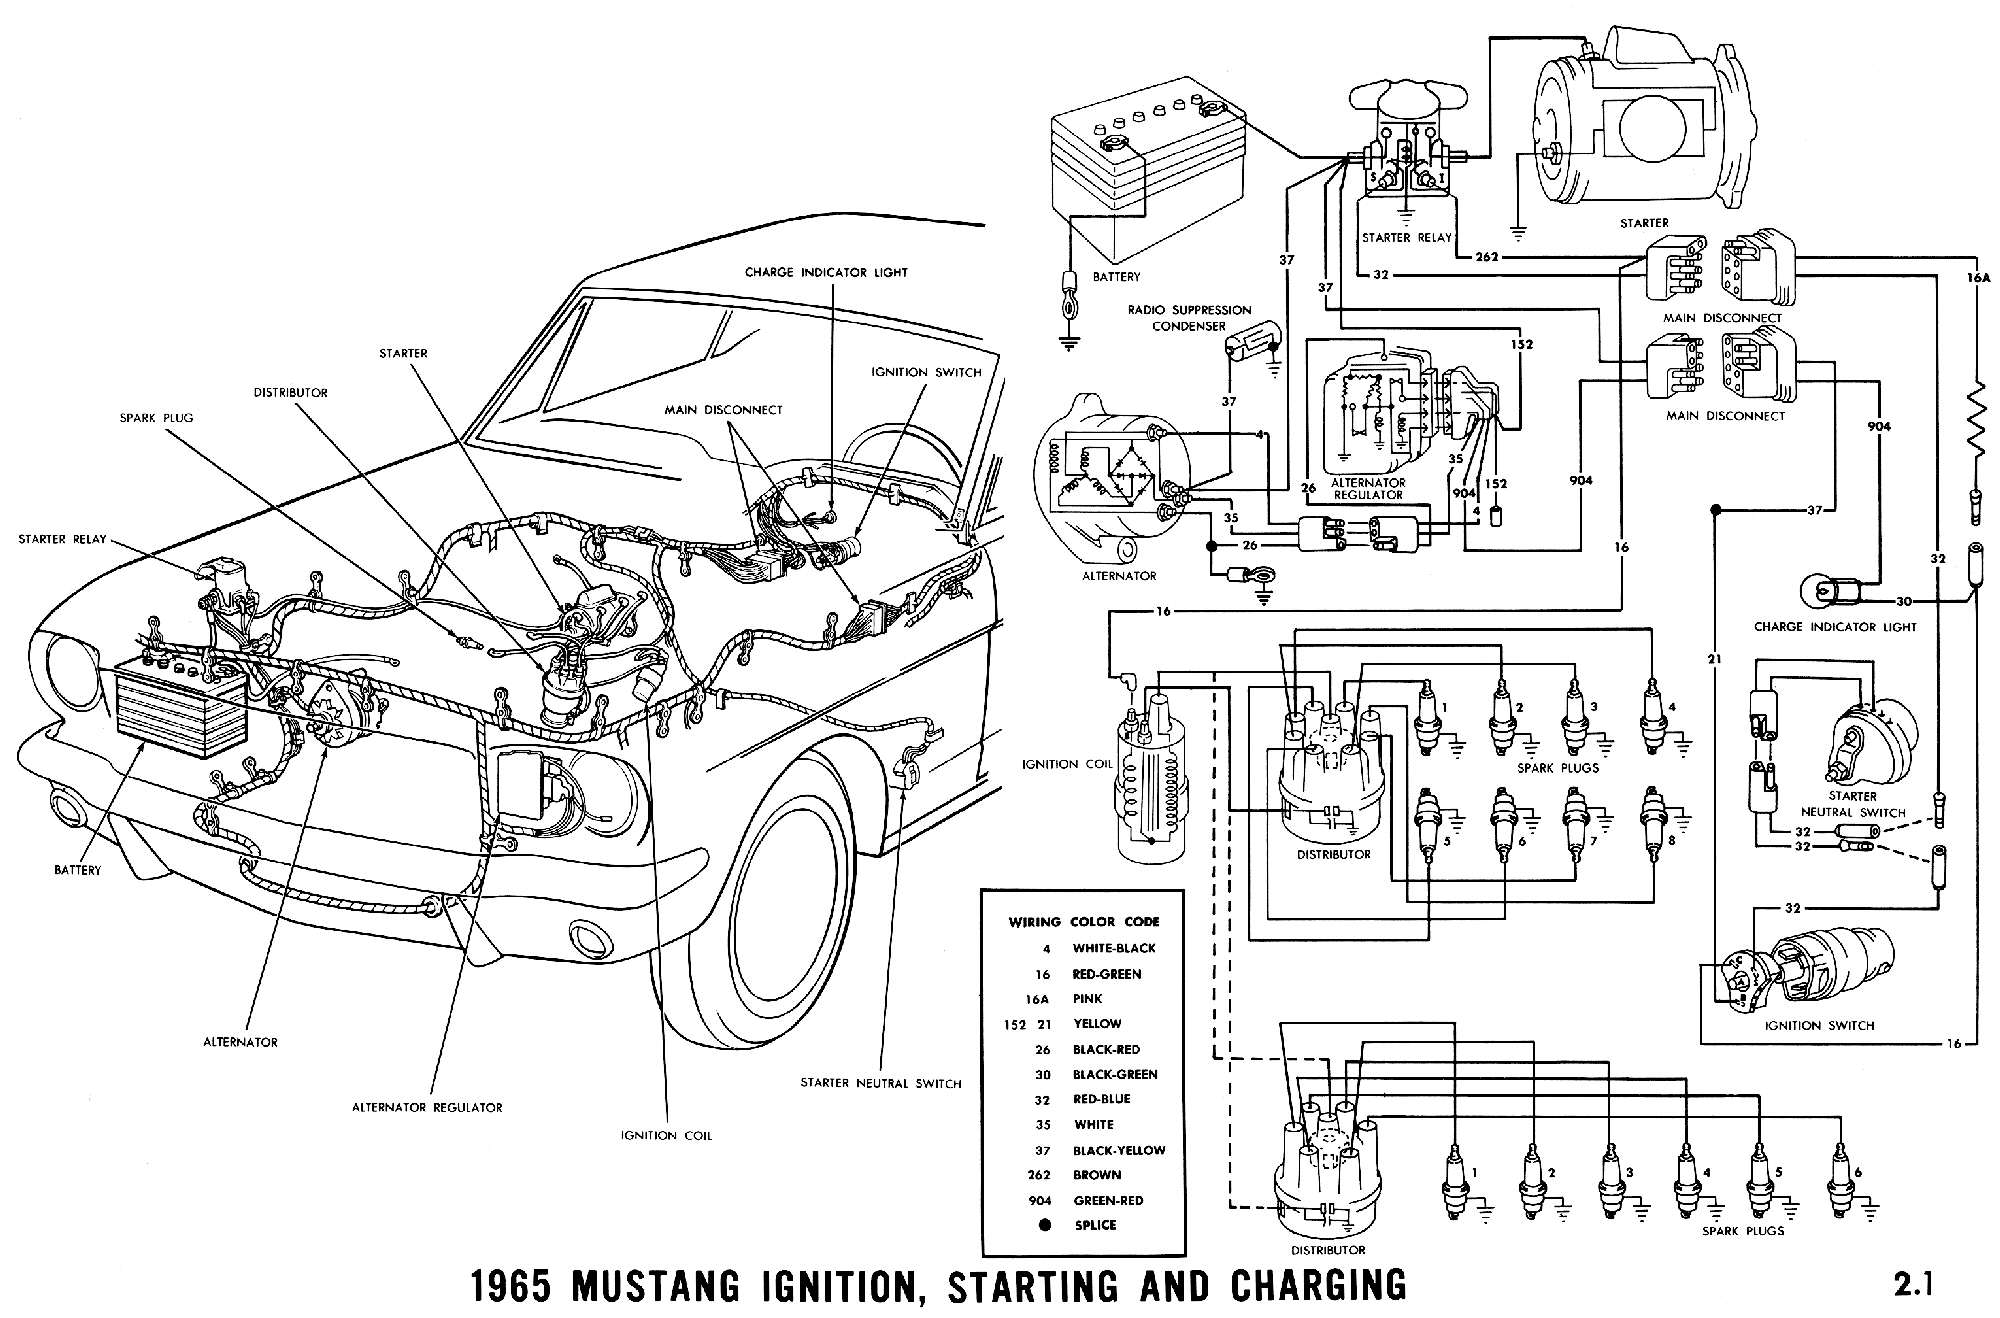 1965c 1965 mustang wiring diagrams average joe restoration 1966 mustang starter solenoid wiring diagram at bayanpartner.co